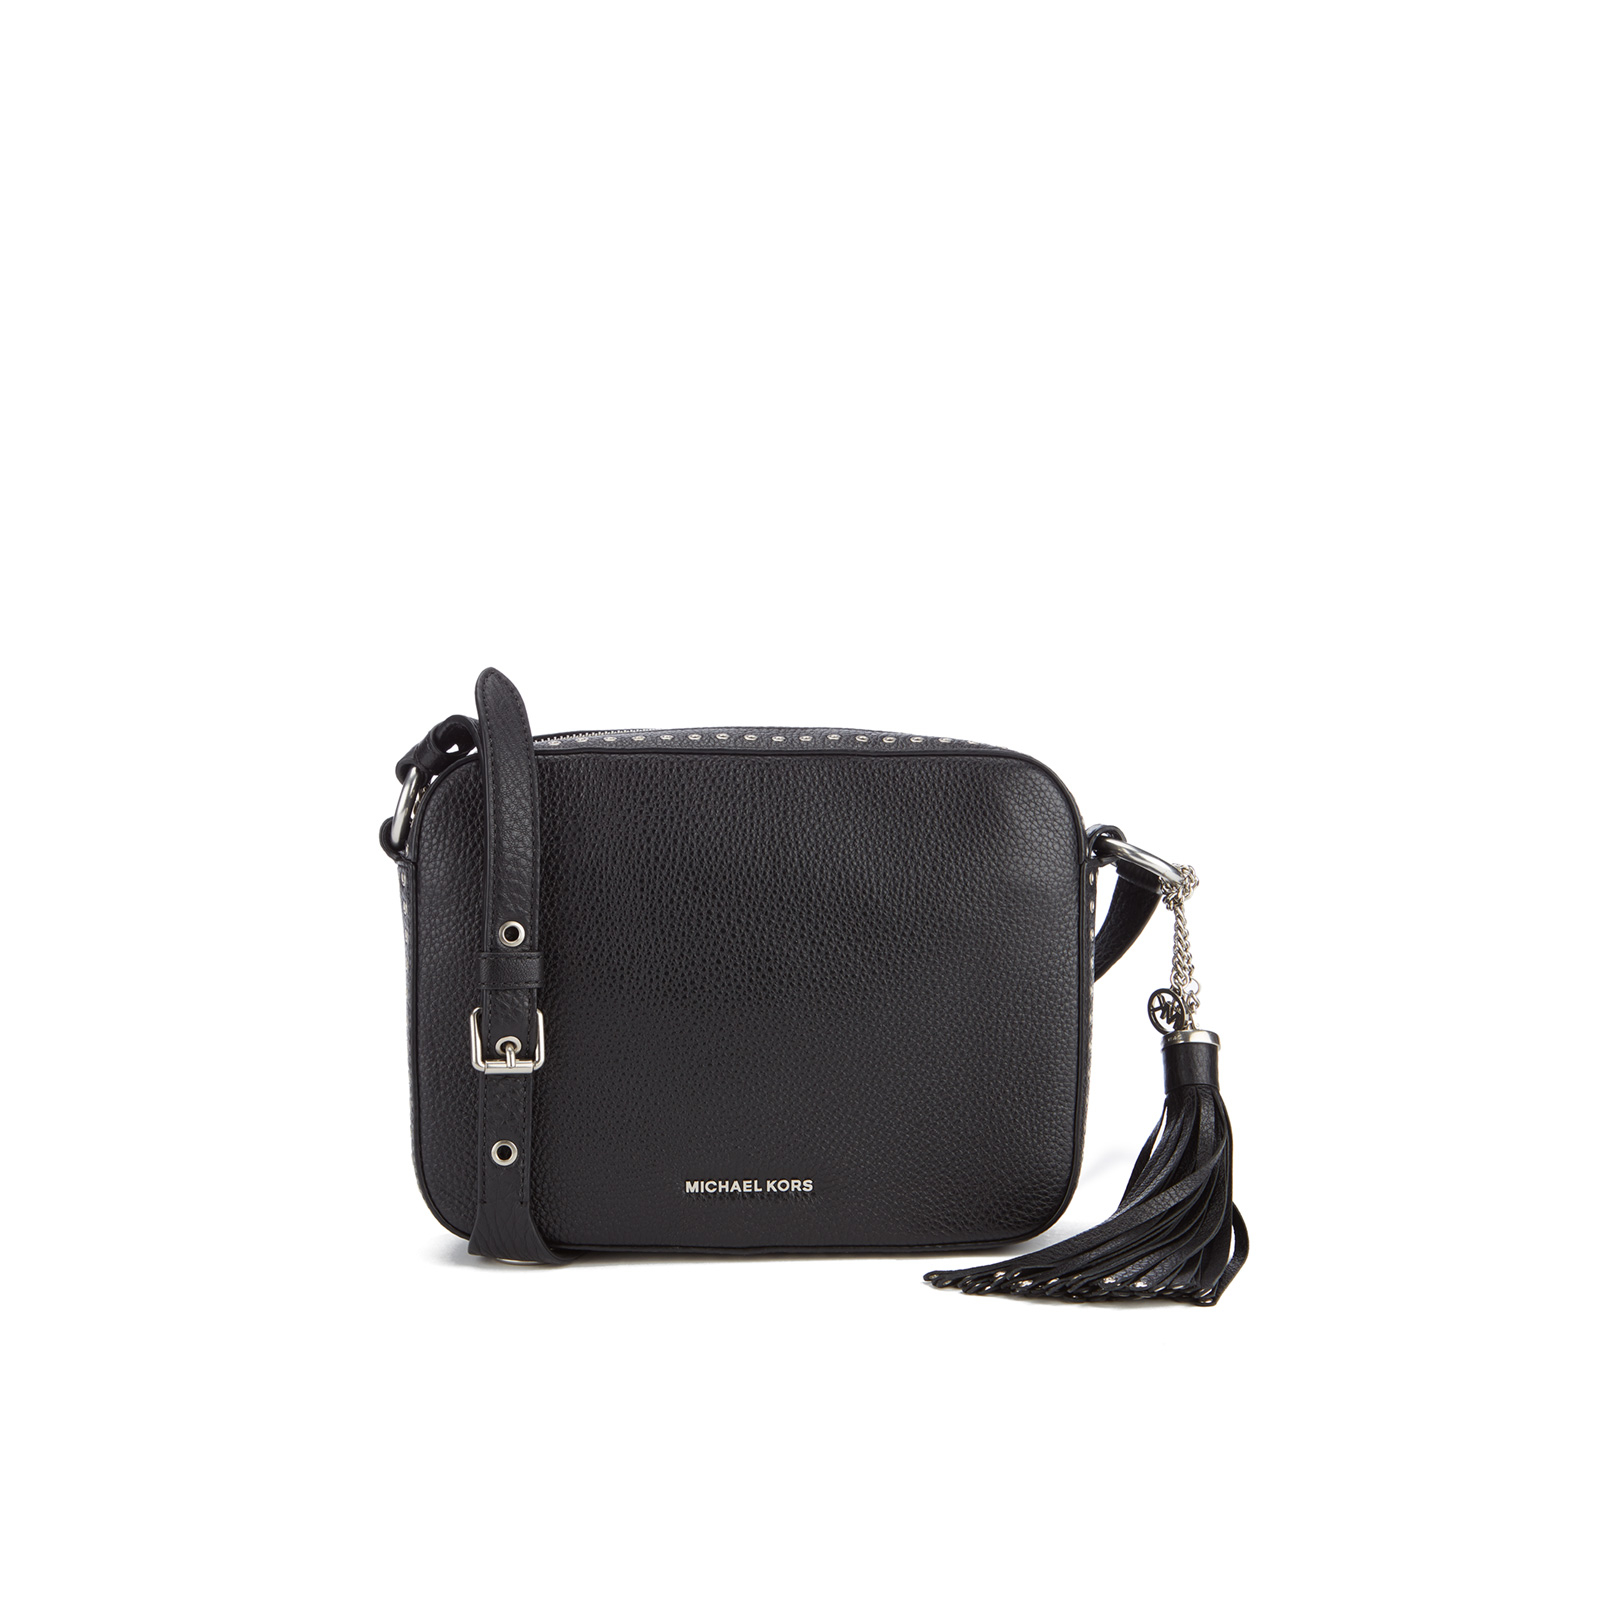 8f42c276f566 MICHAEL MICHAEL KORS Women s Brooklyn Large Camera Bag - Black - Free UK  Delivery over £50